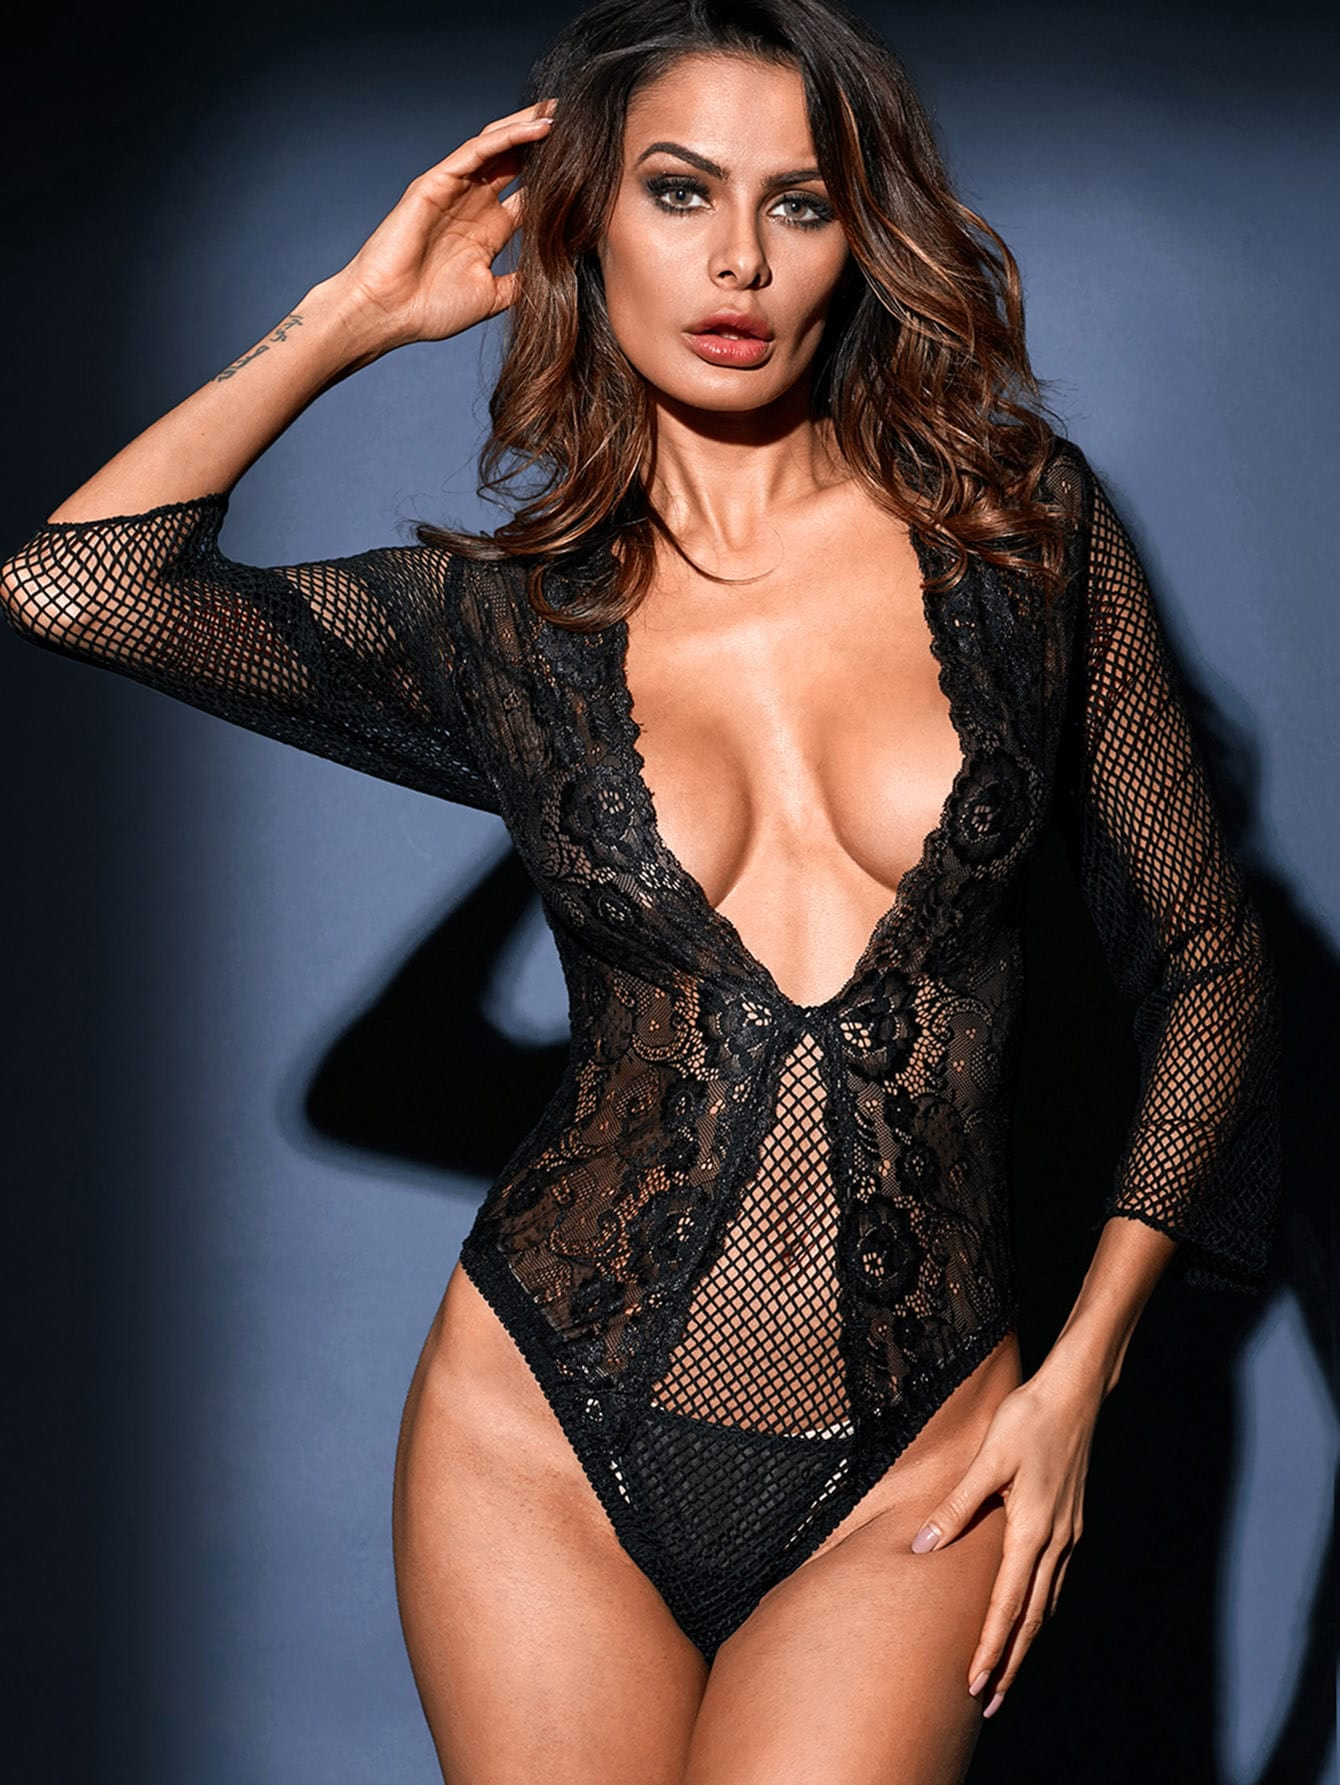 V Plunge Lace & Fishnet Teddy pink lace detail cut out v neck see through fishnet teddy